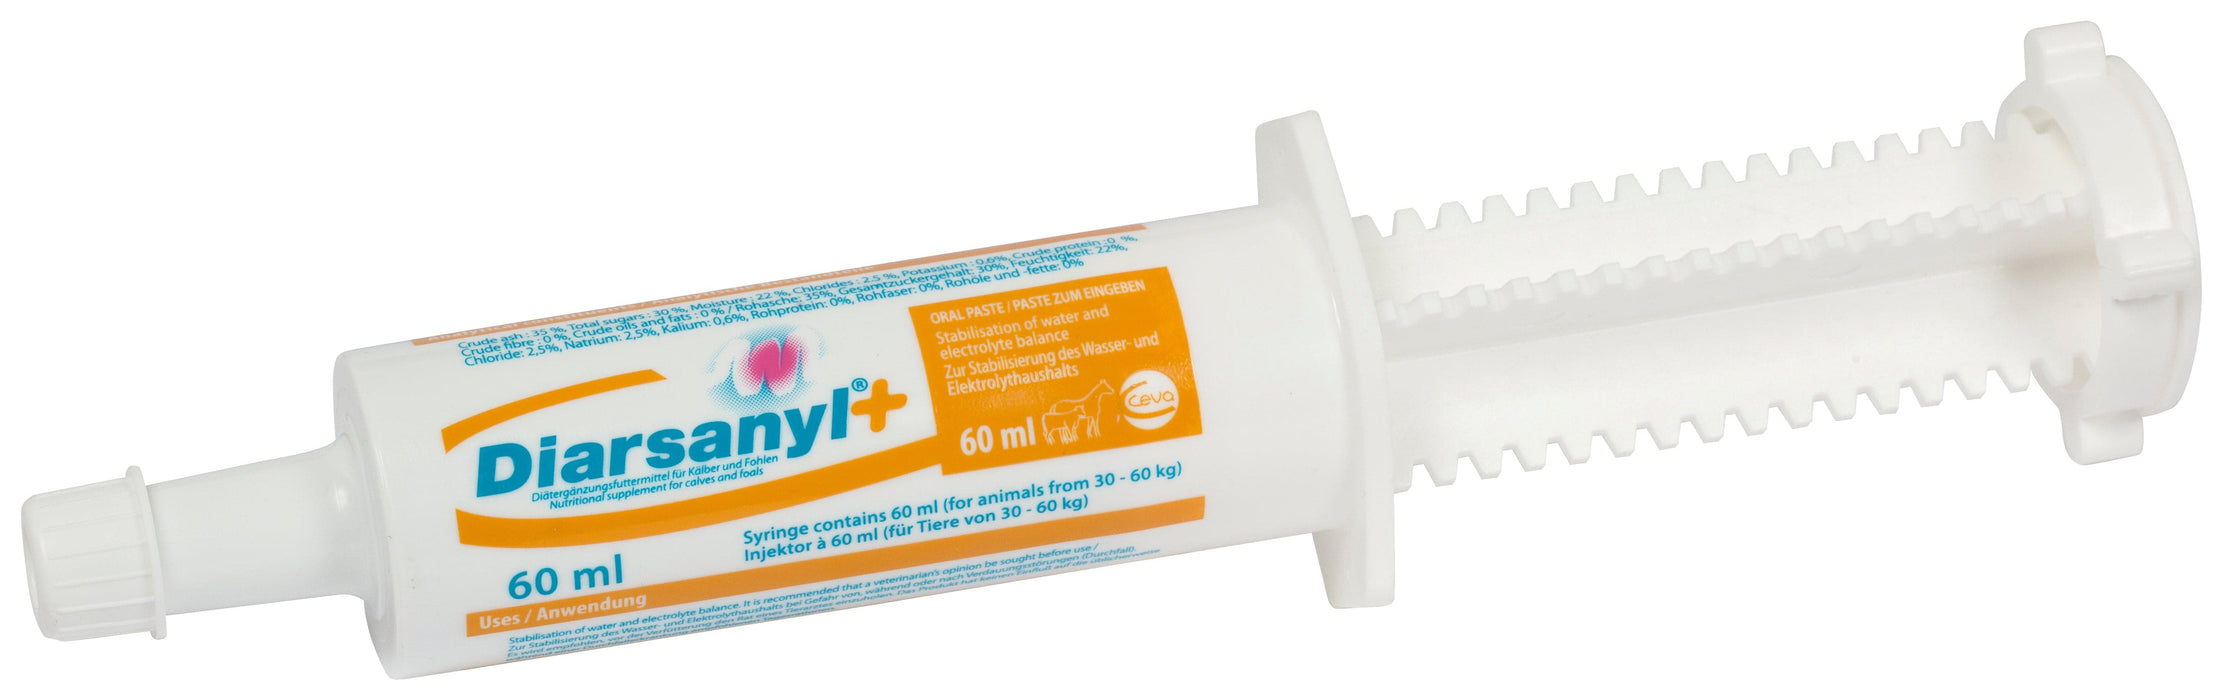 Diarsanyl plus | Marigin AG